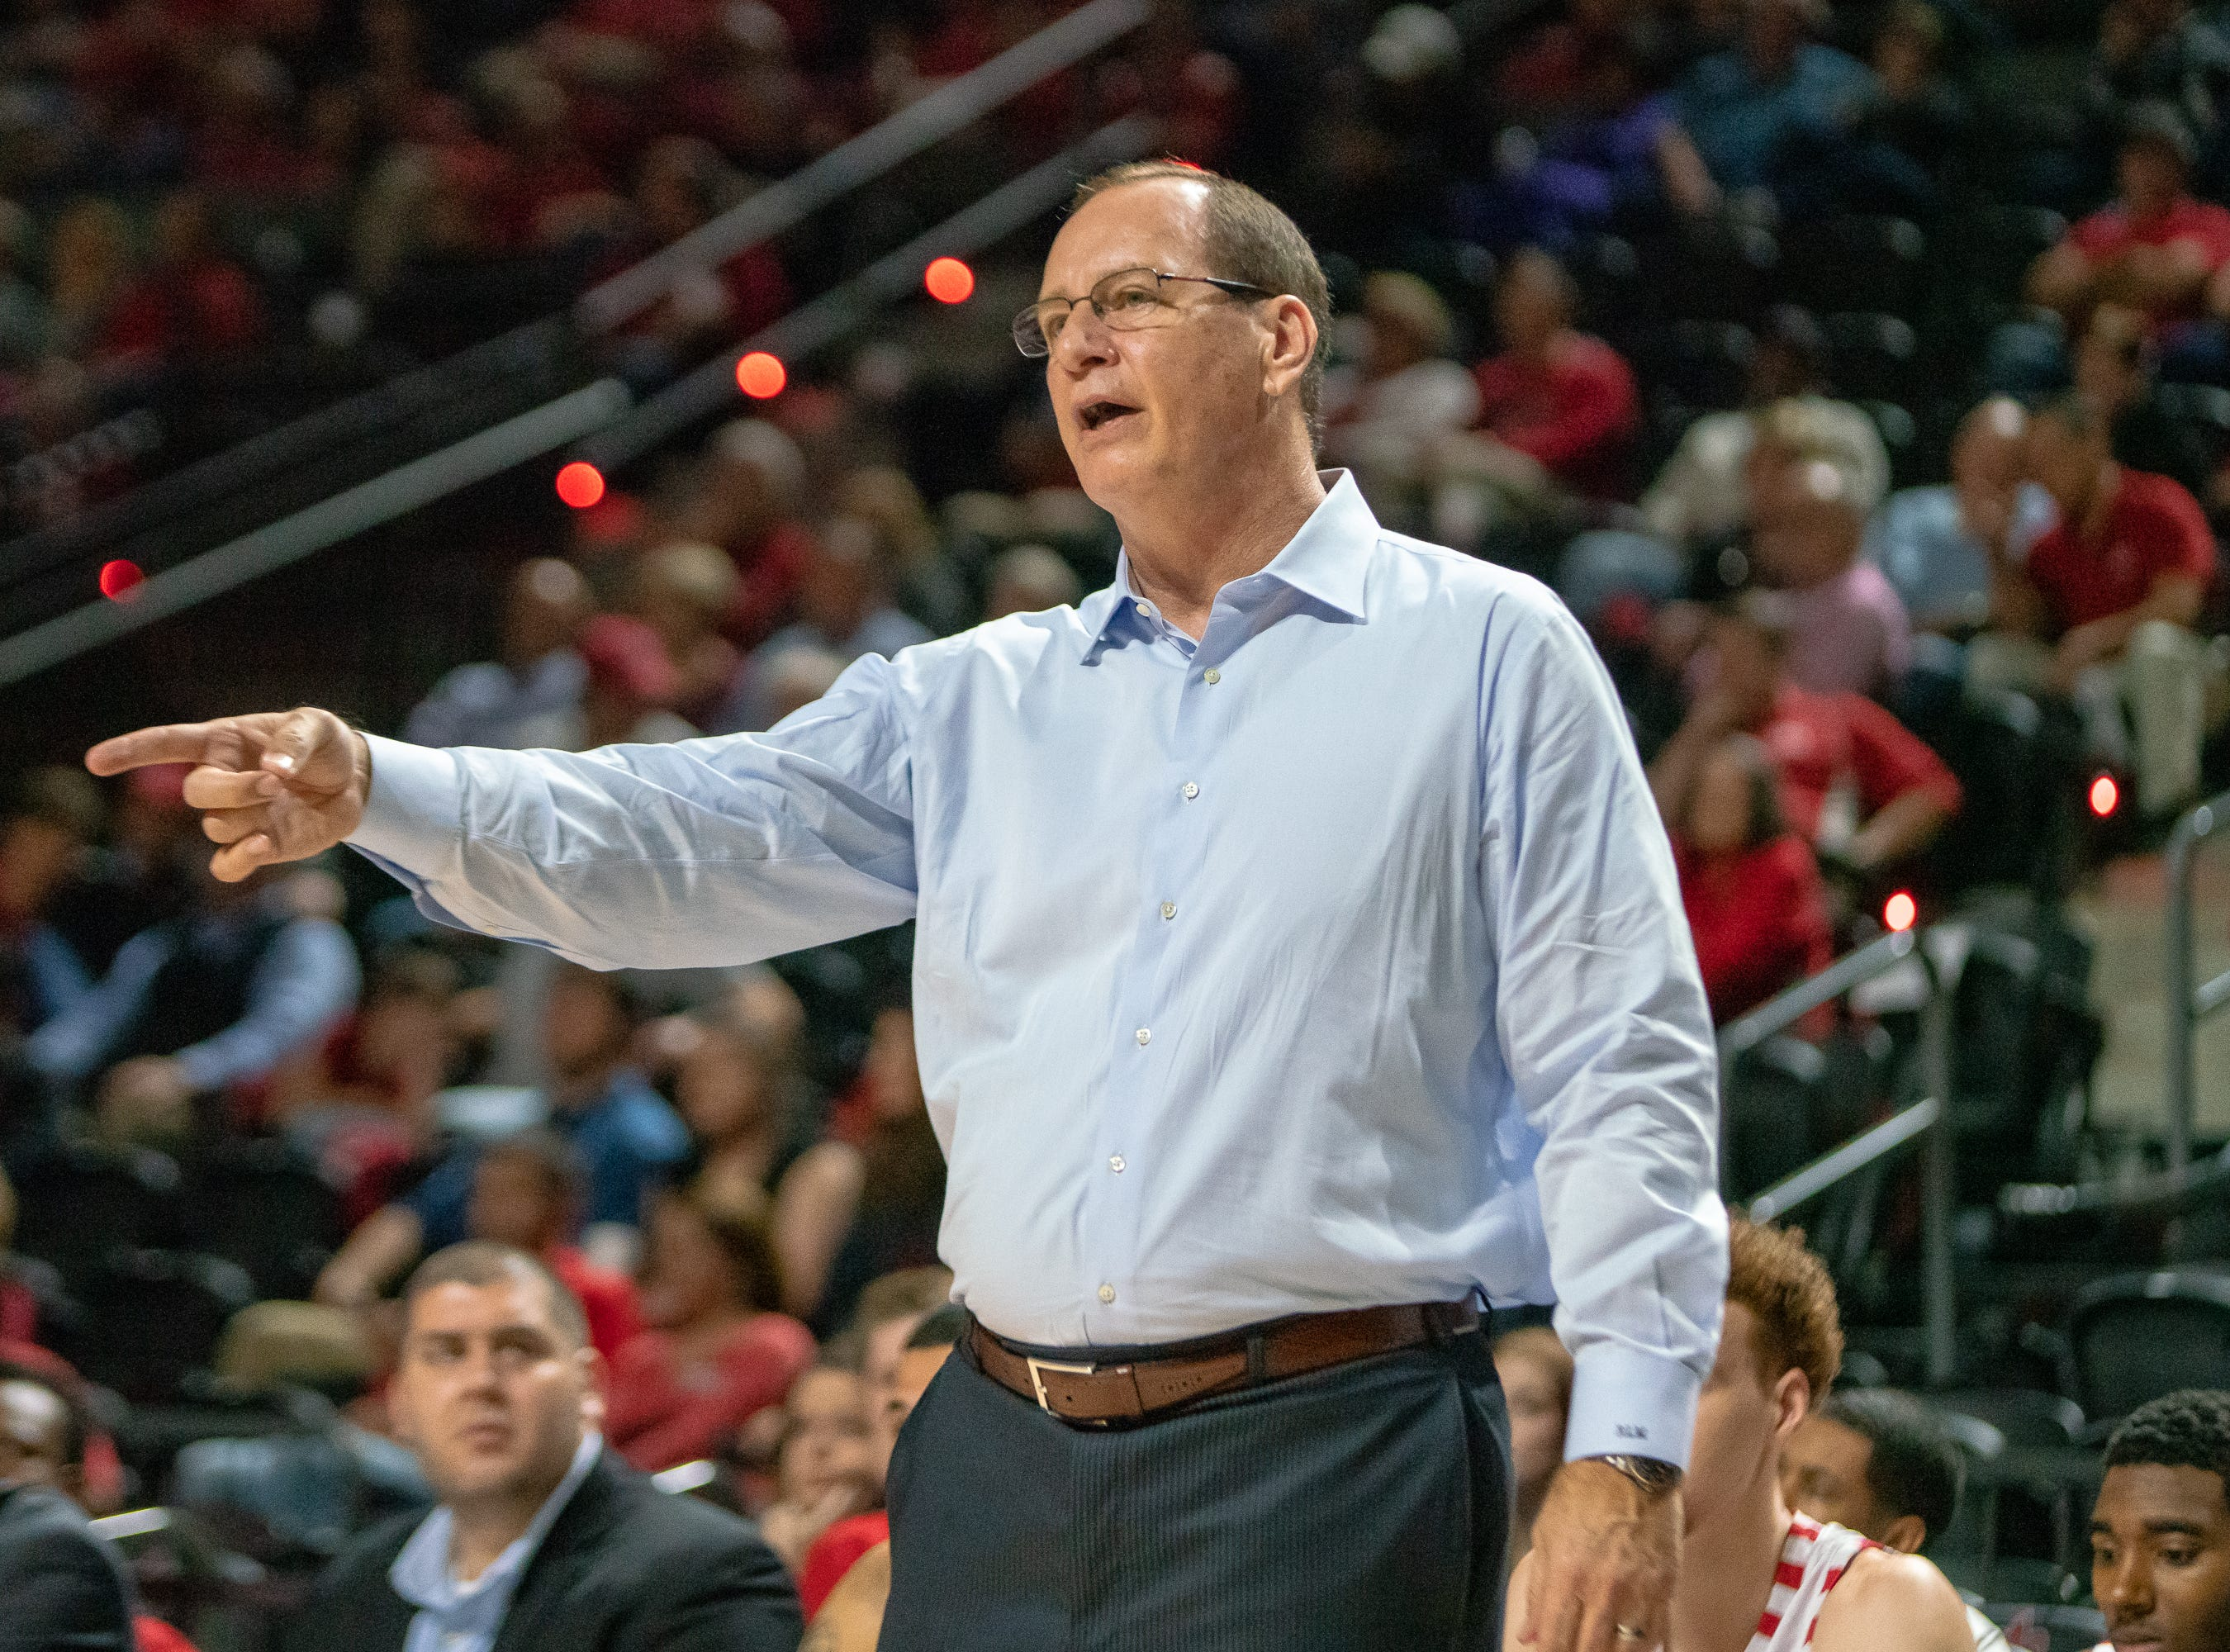 UL head basketball coach Bob Marlin directs his team on the court as the Ragin' Cajuns take on the Georgia Southern Eagles at the Cajundome on Feb. 6, 2019.